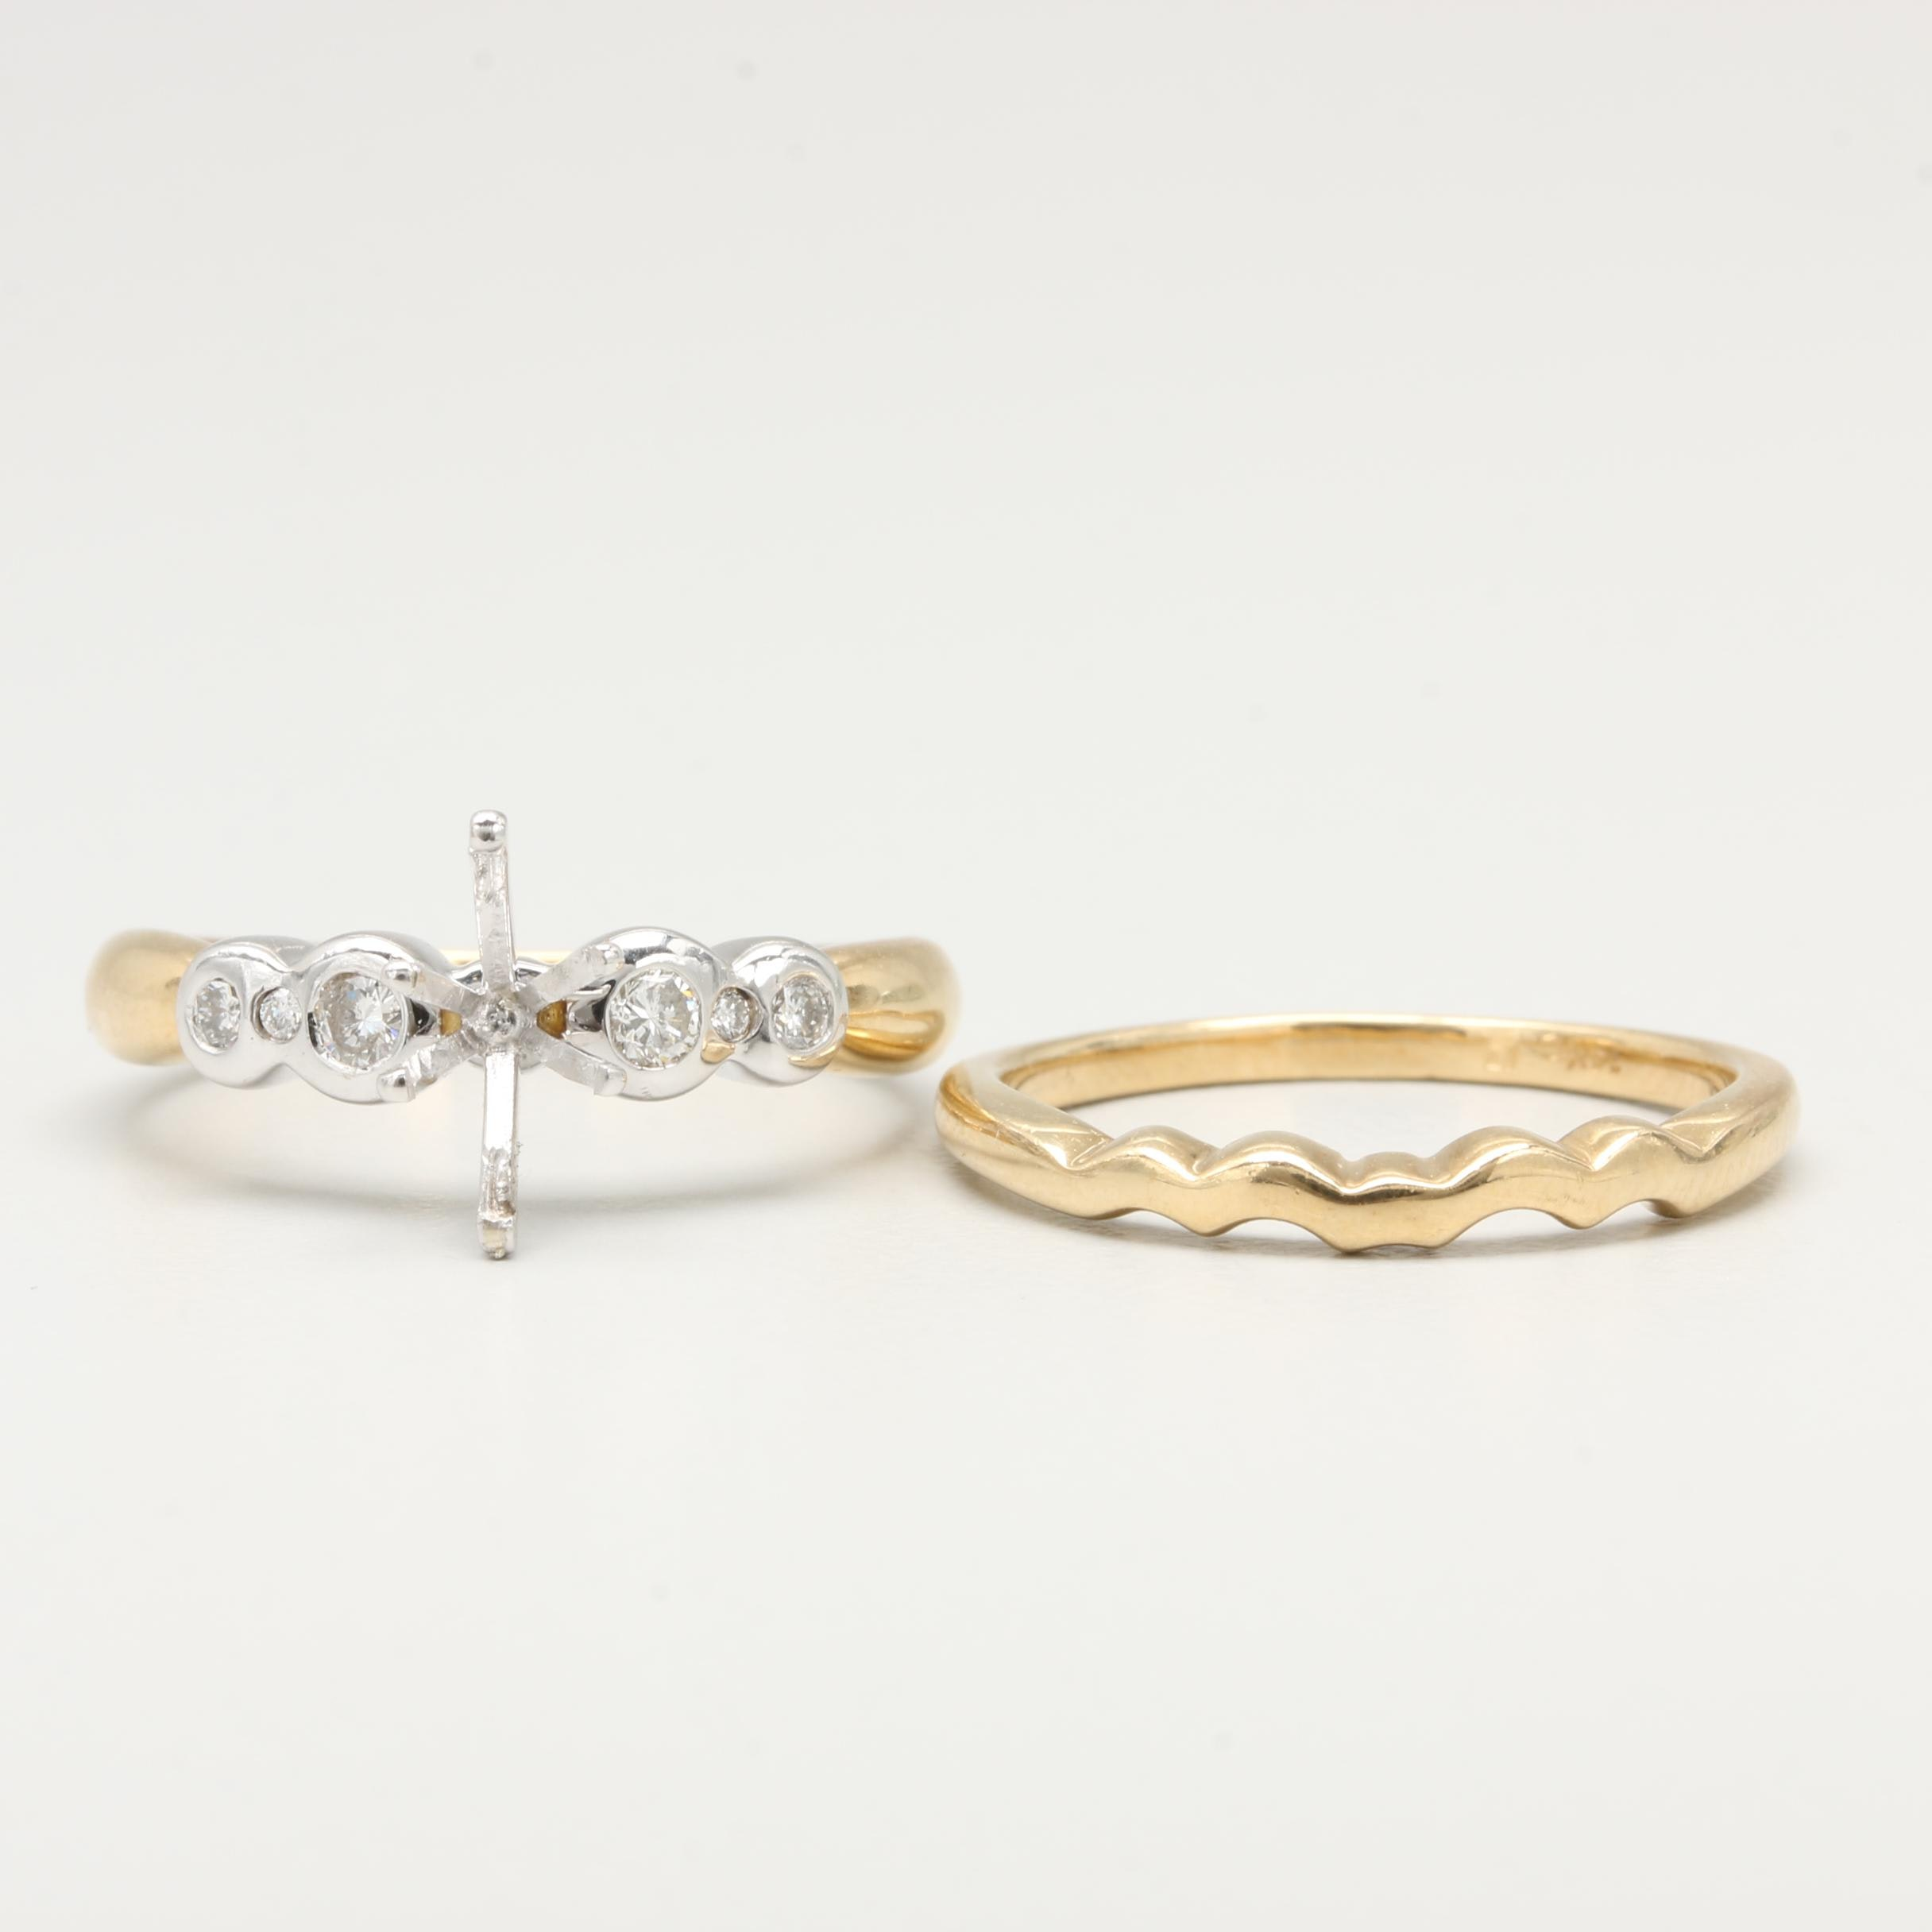 14K Yellow and White Gold Diamond Rings Including Semi-Mount Setting